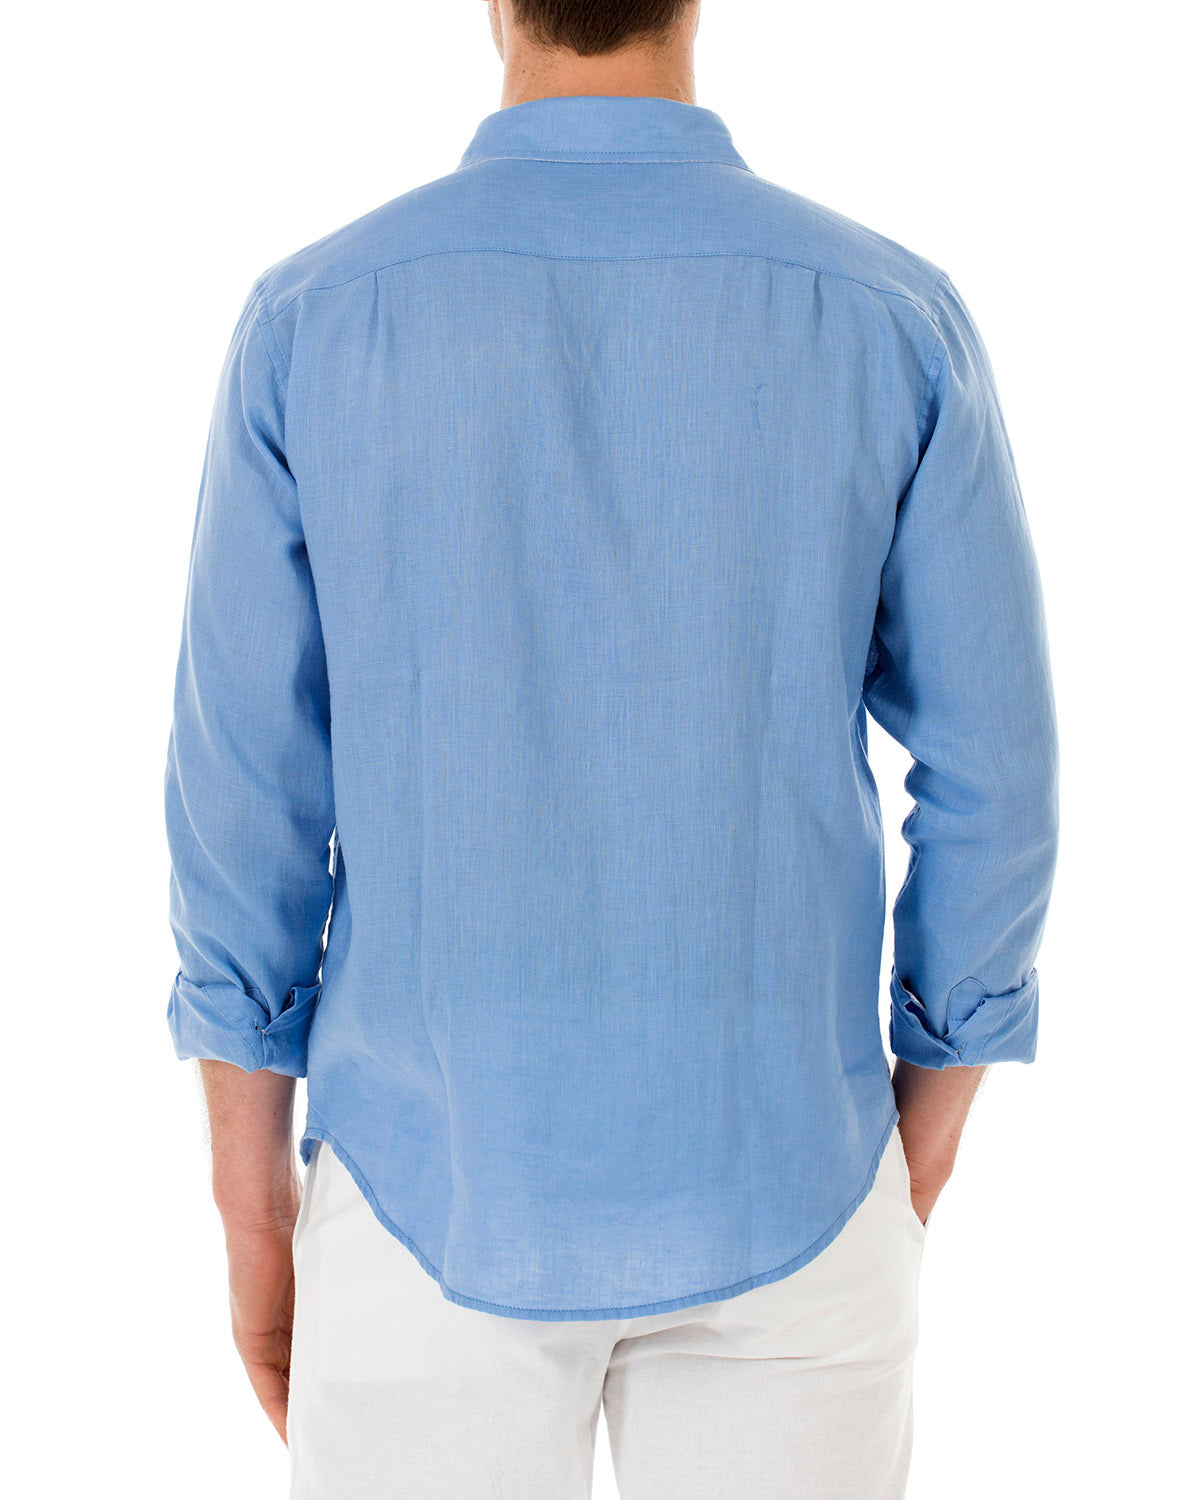 Mens Linen Shirt : FRENCH BLUE back